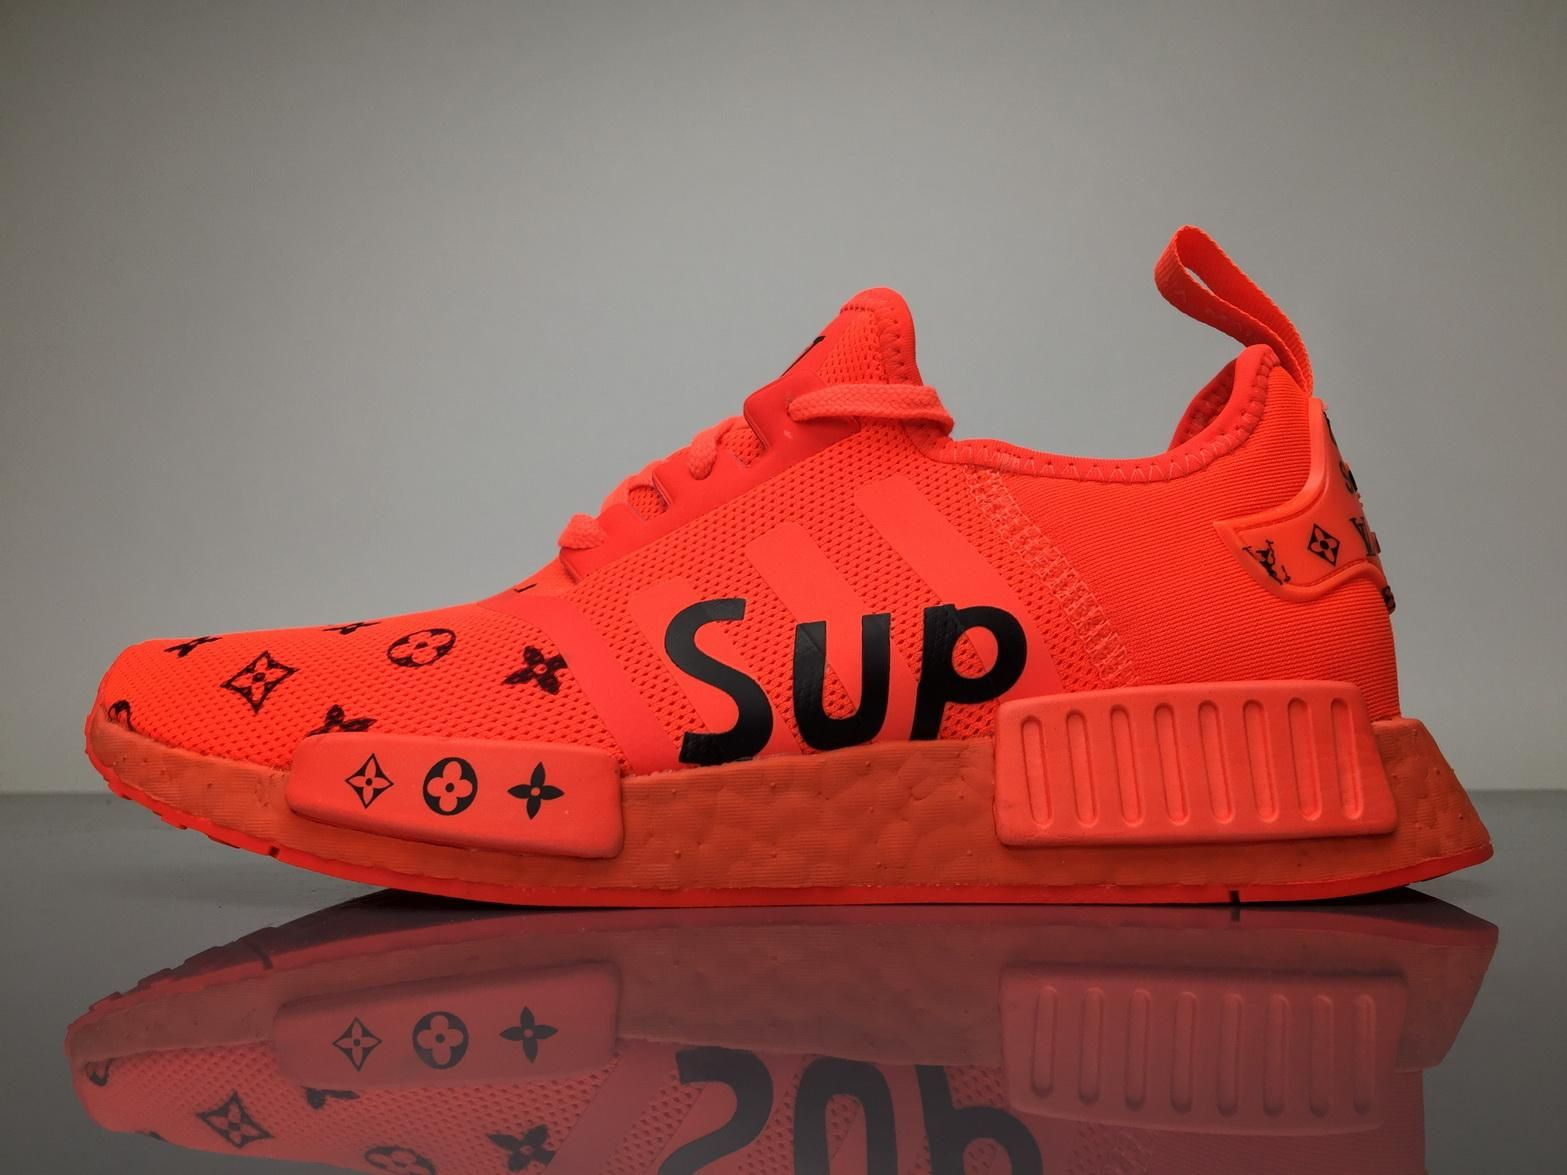 Louis Vuitton x Supreme adidas NMD Boost | | Customkicks by